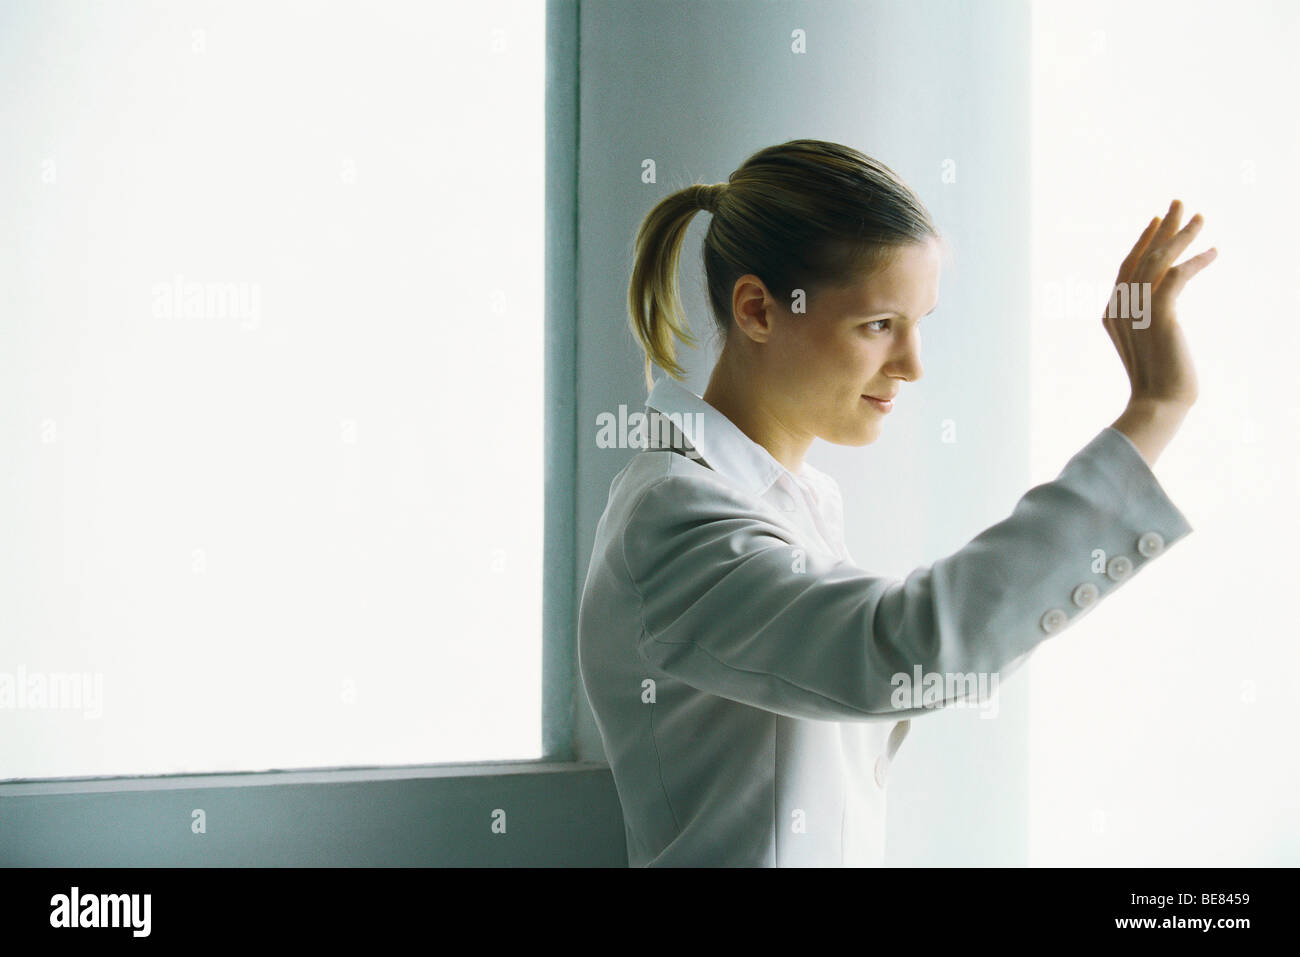 Woman waving, side view - Stock Image